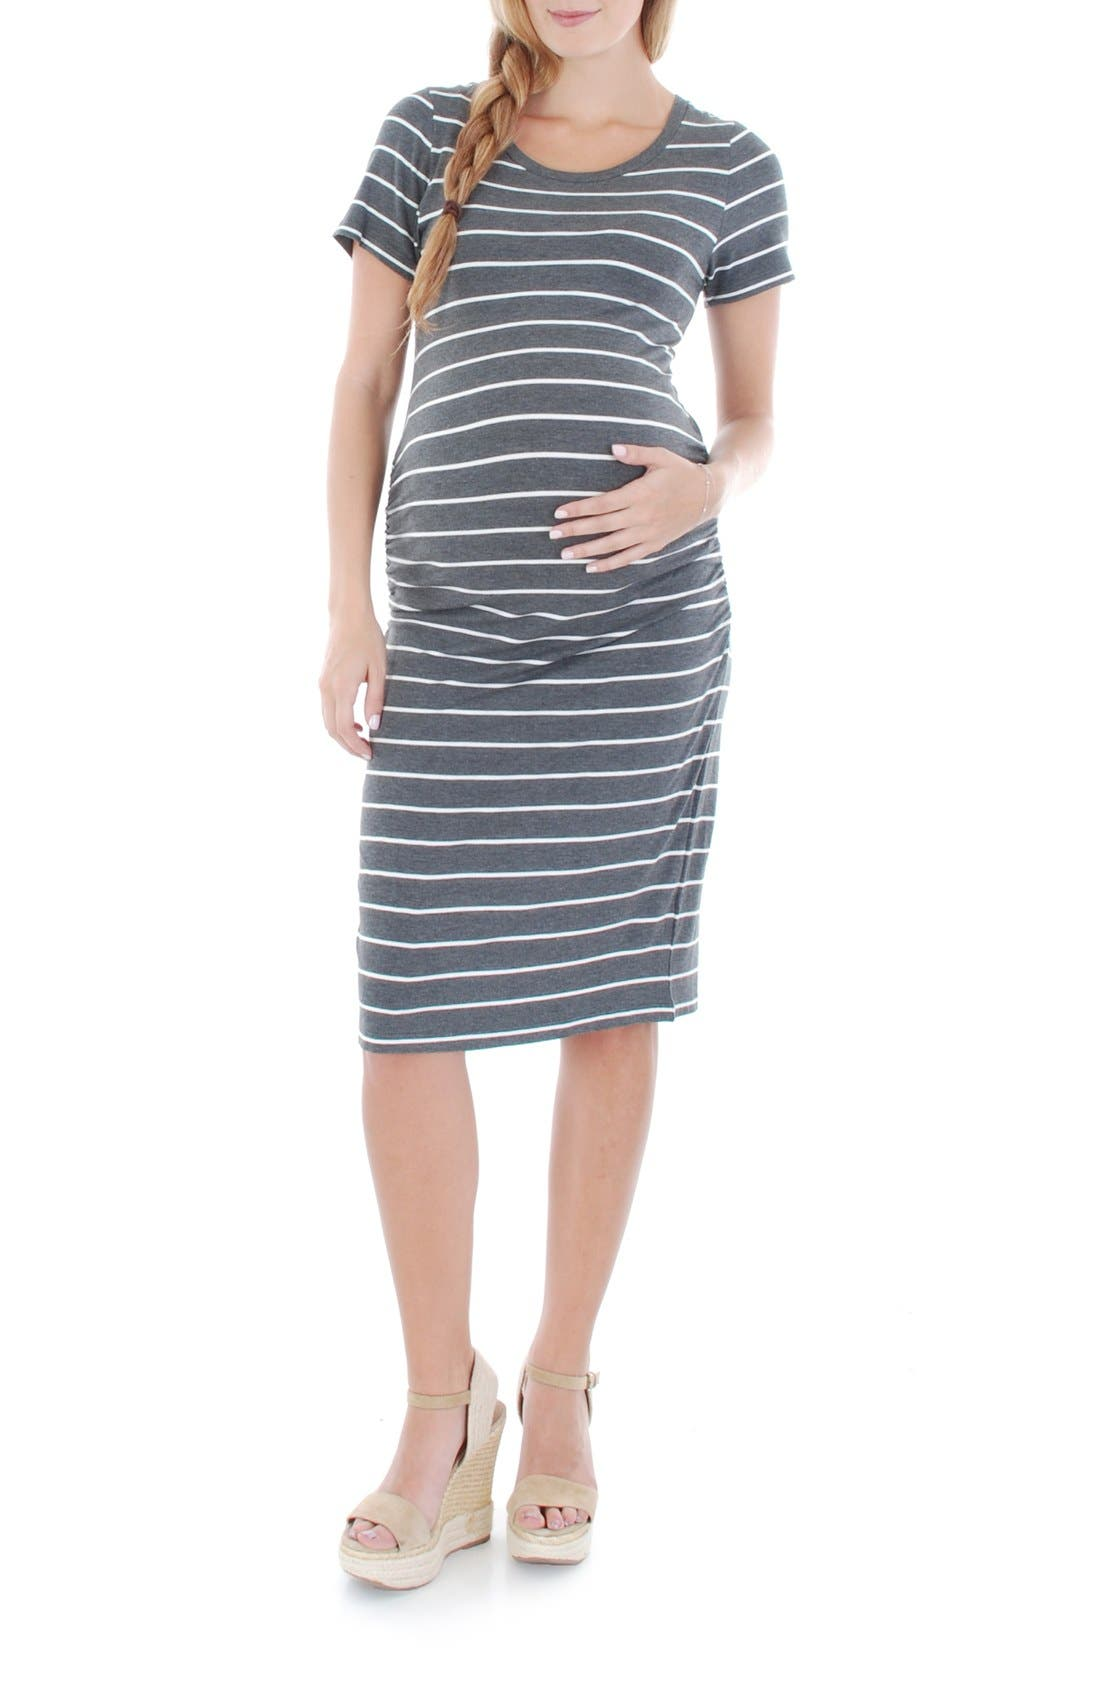 Everly Grey 'Camila' Stripe Maternity Dress